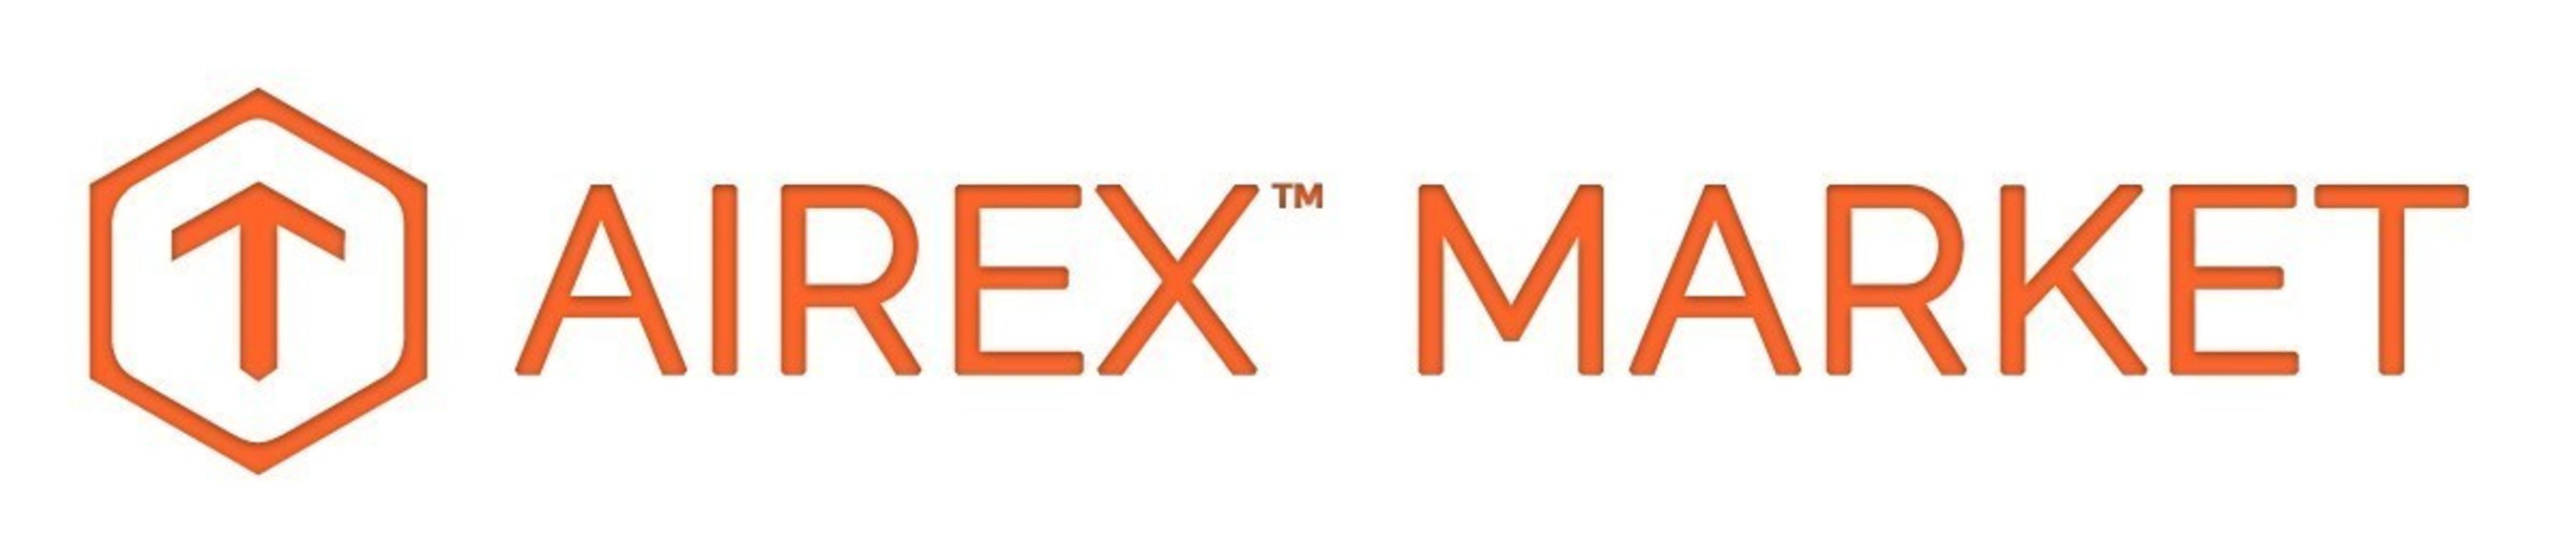 Airex Launches Airex Market Partner (AMP) Program With 6 Firms